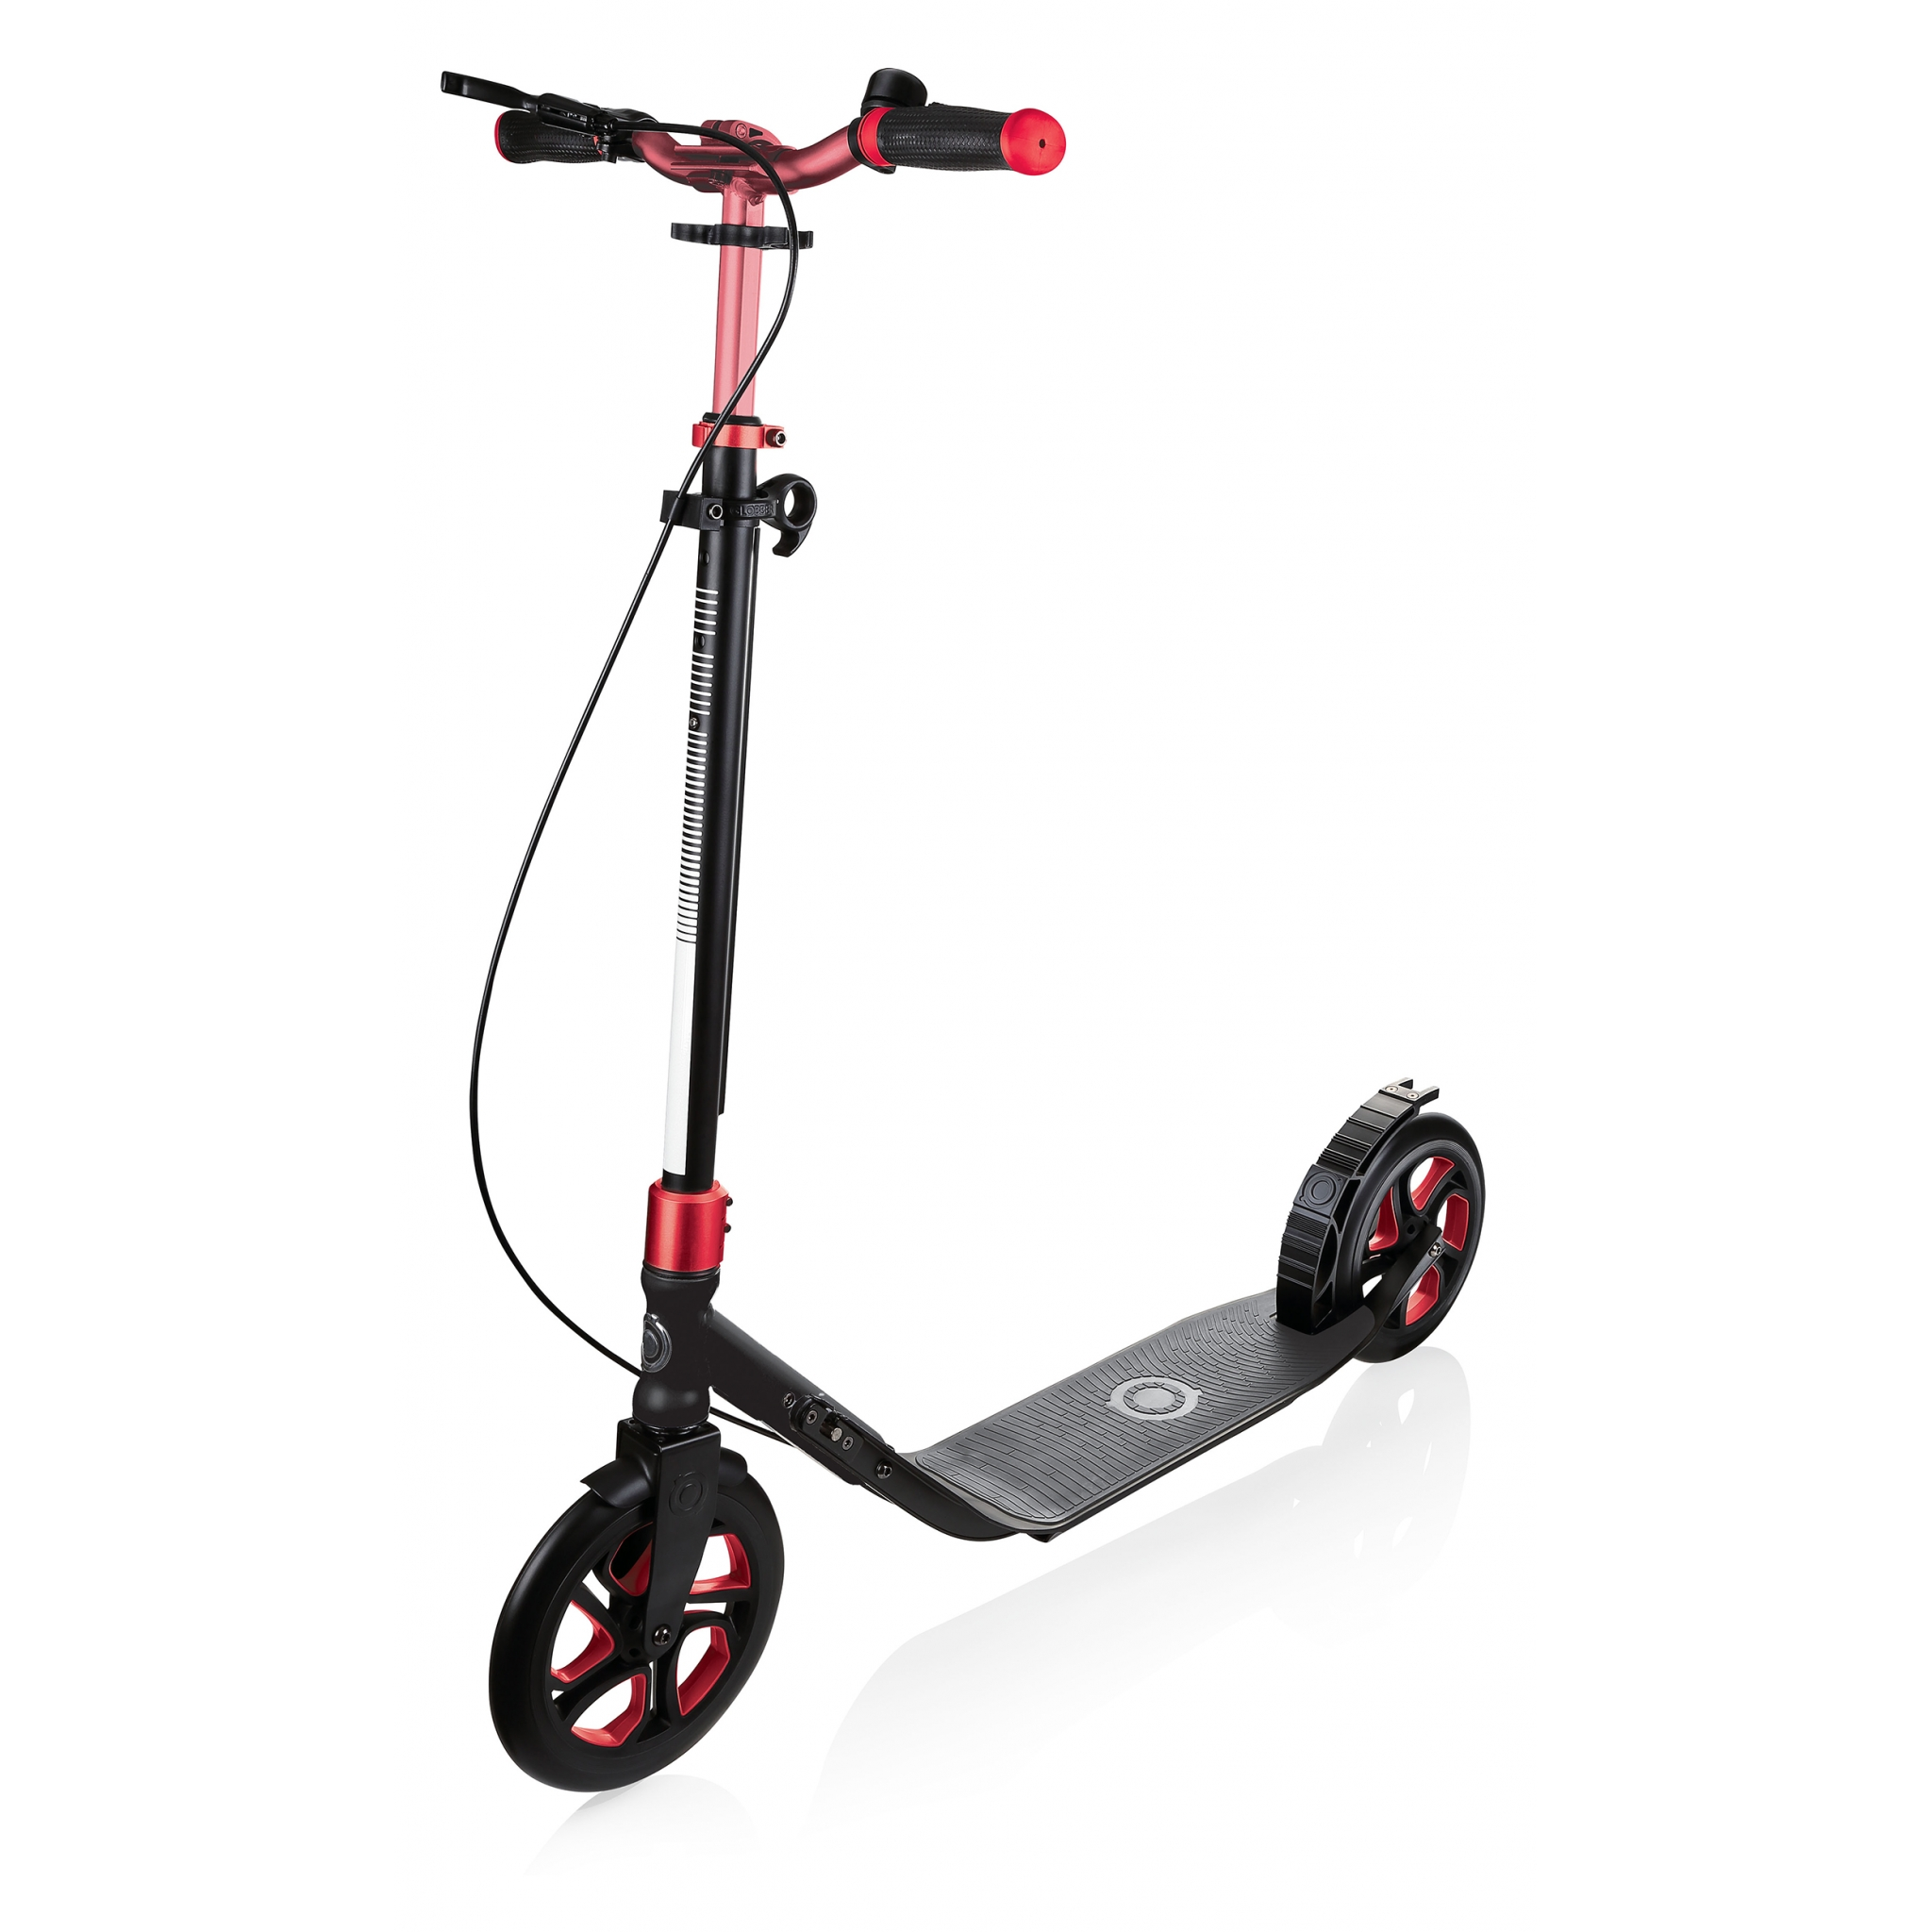 globber one nl 230 ultimate 2 wheel scooter for adults. Black Bedroom Furniture Sets. Home Design Ideas